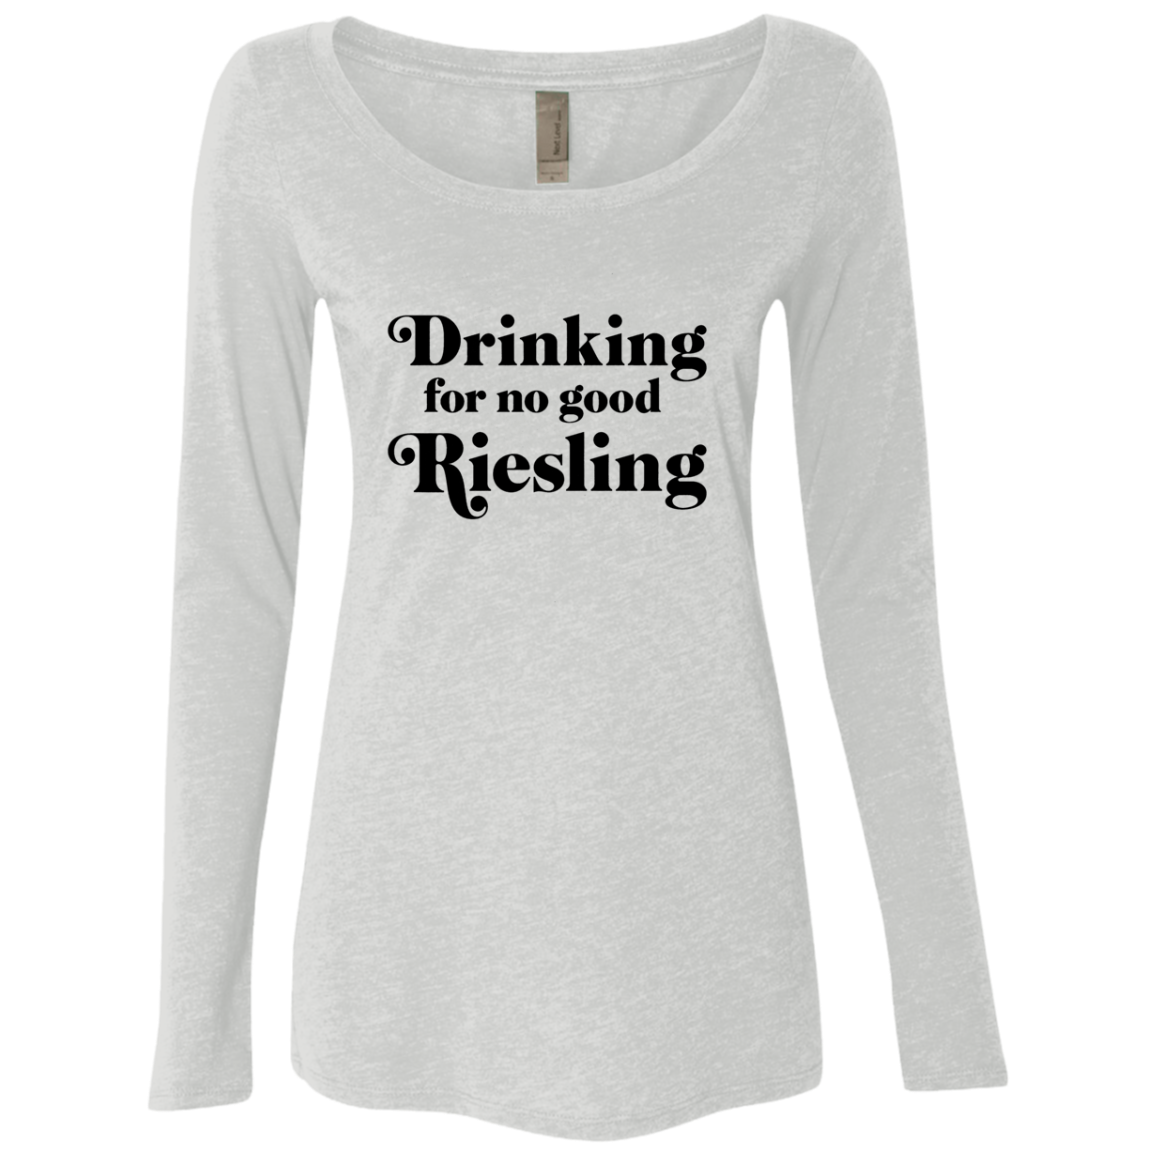 Drinking for no good Riesling Women's Long Sleeve Tee